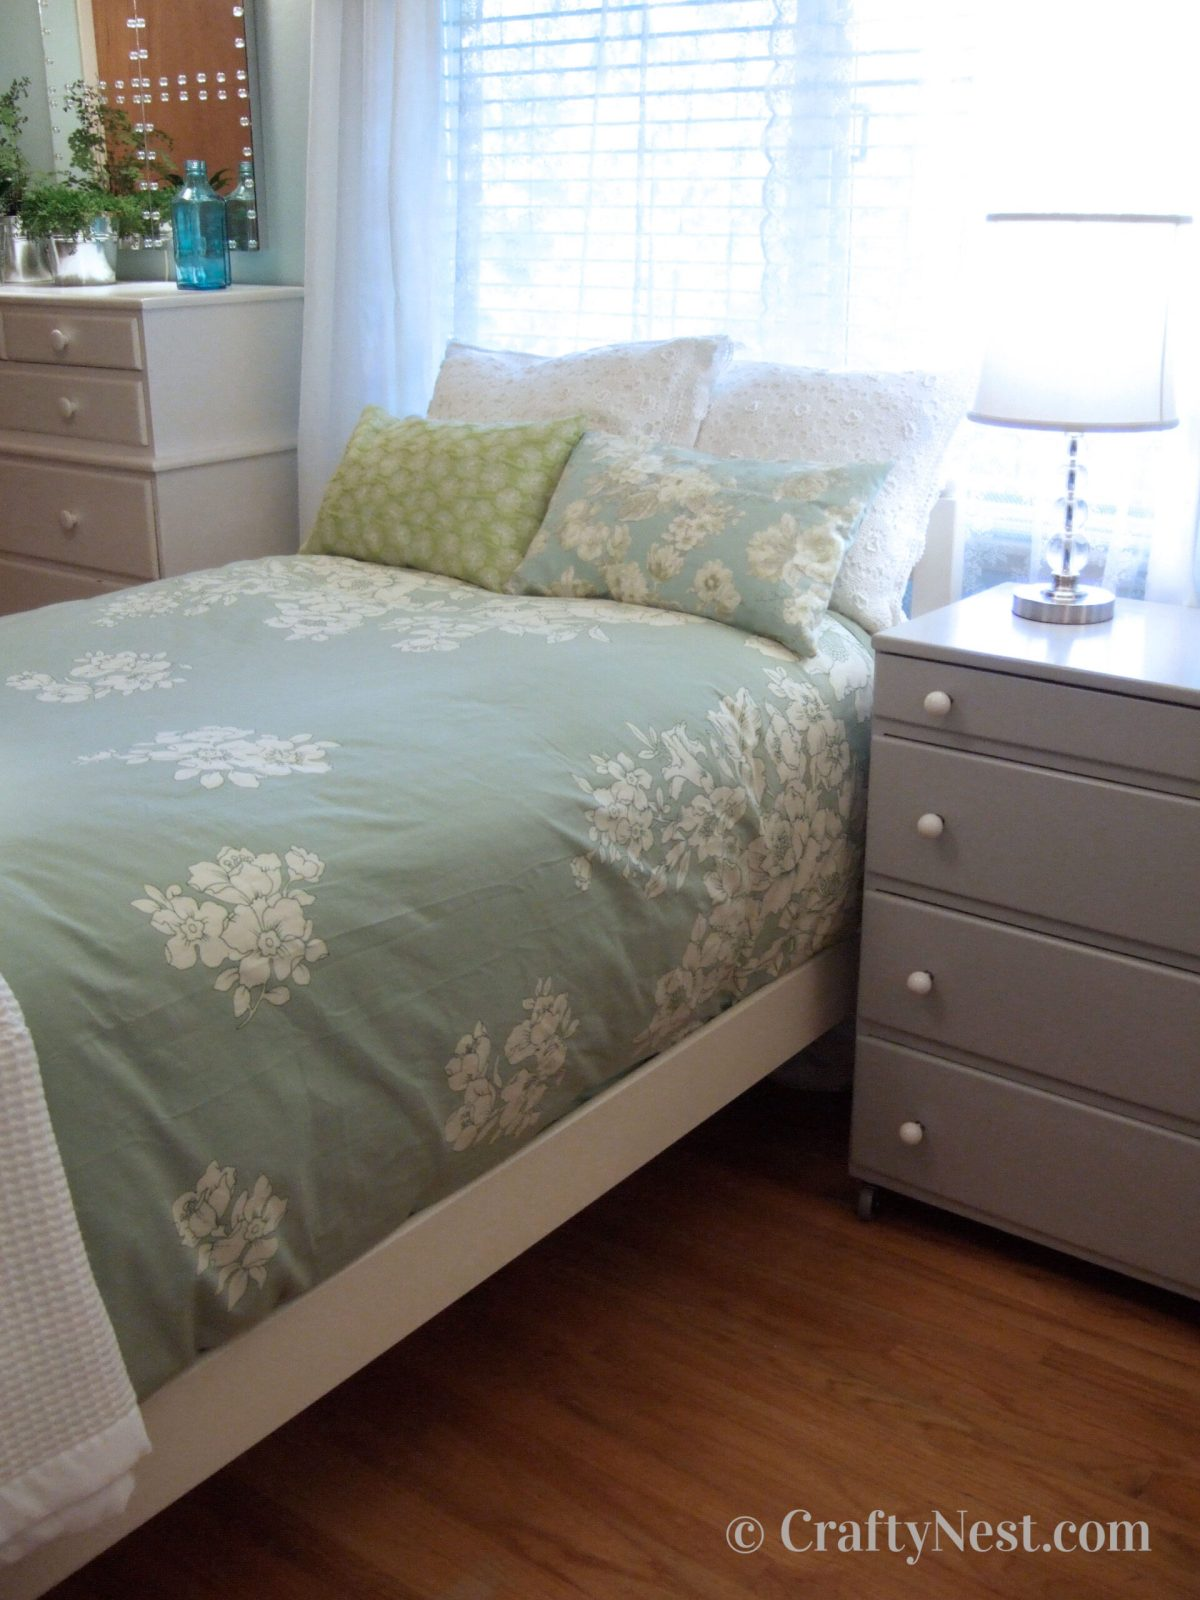 Bed and dresser, after photo